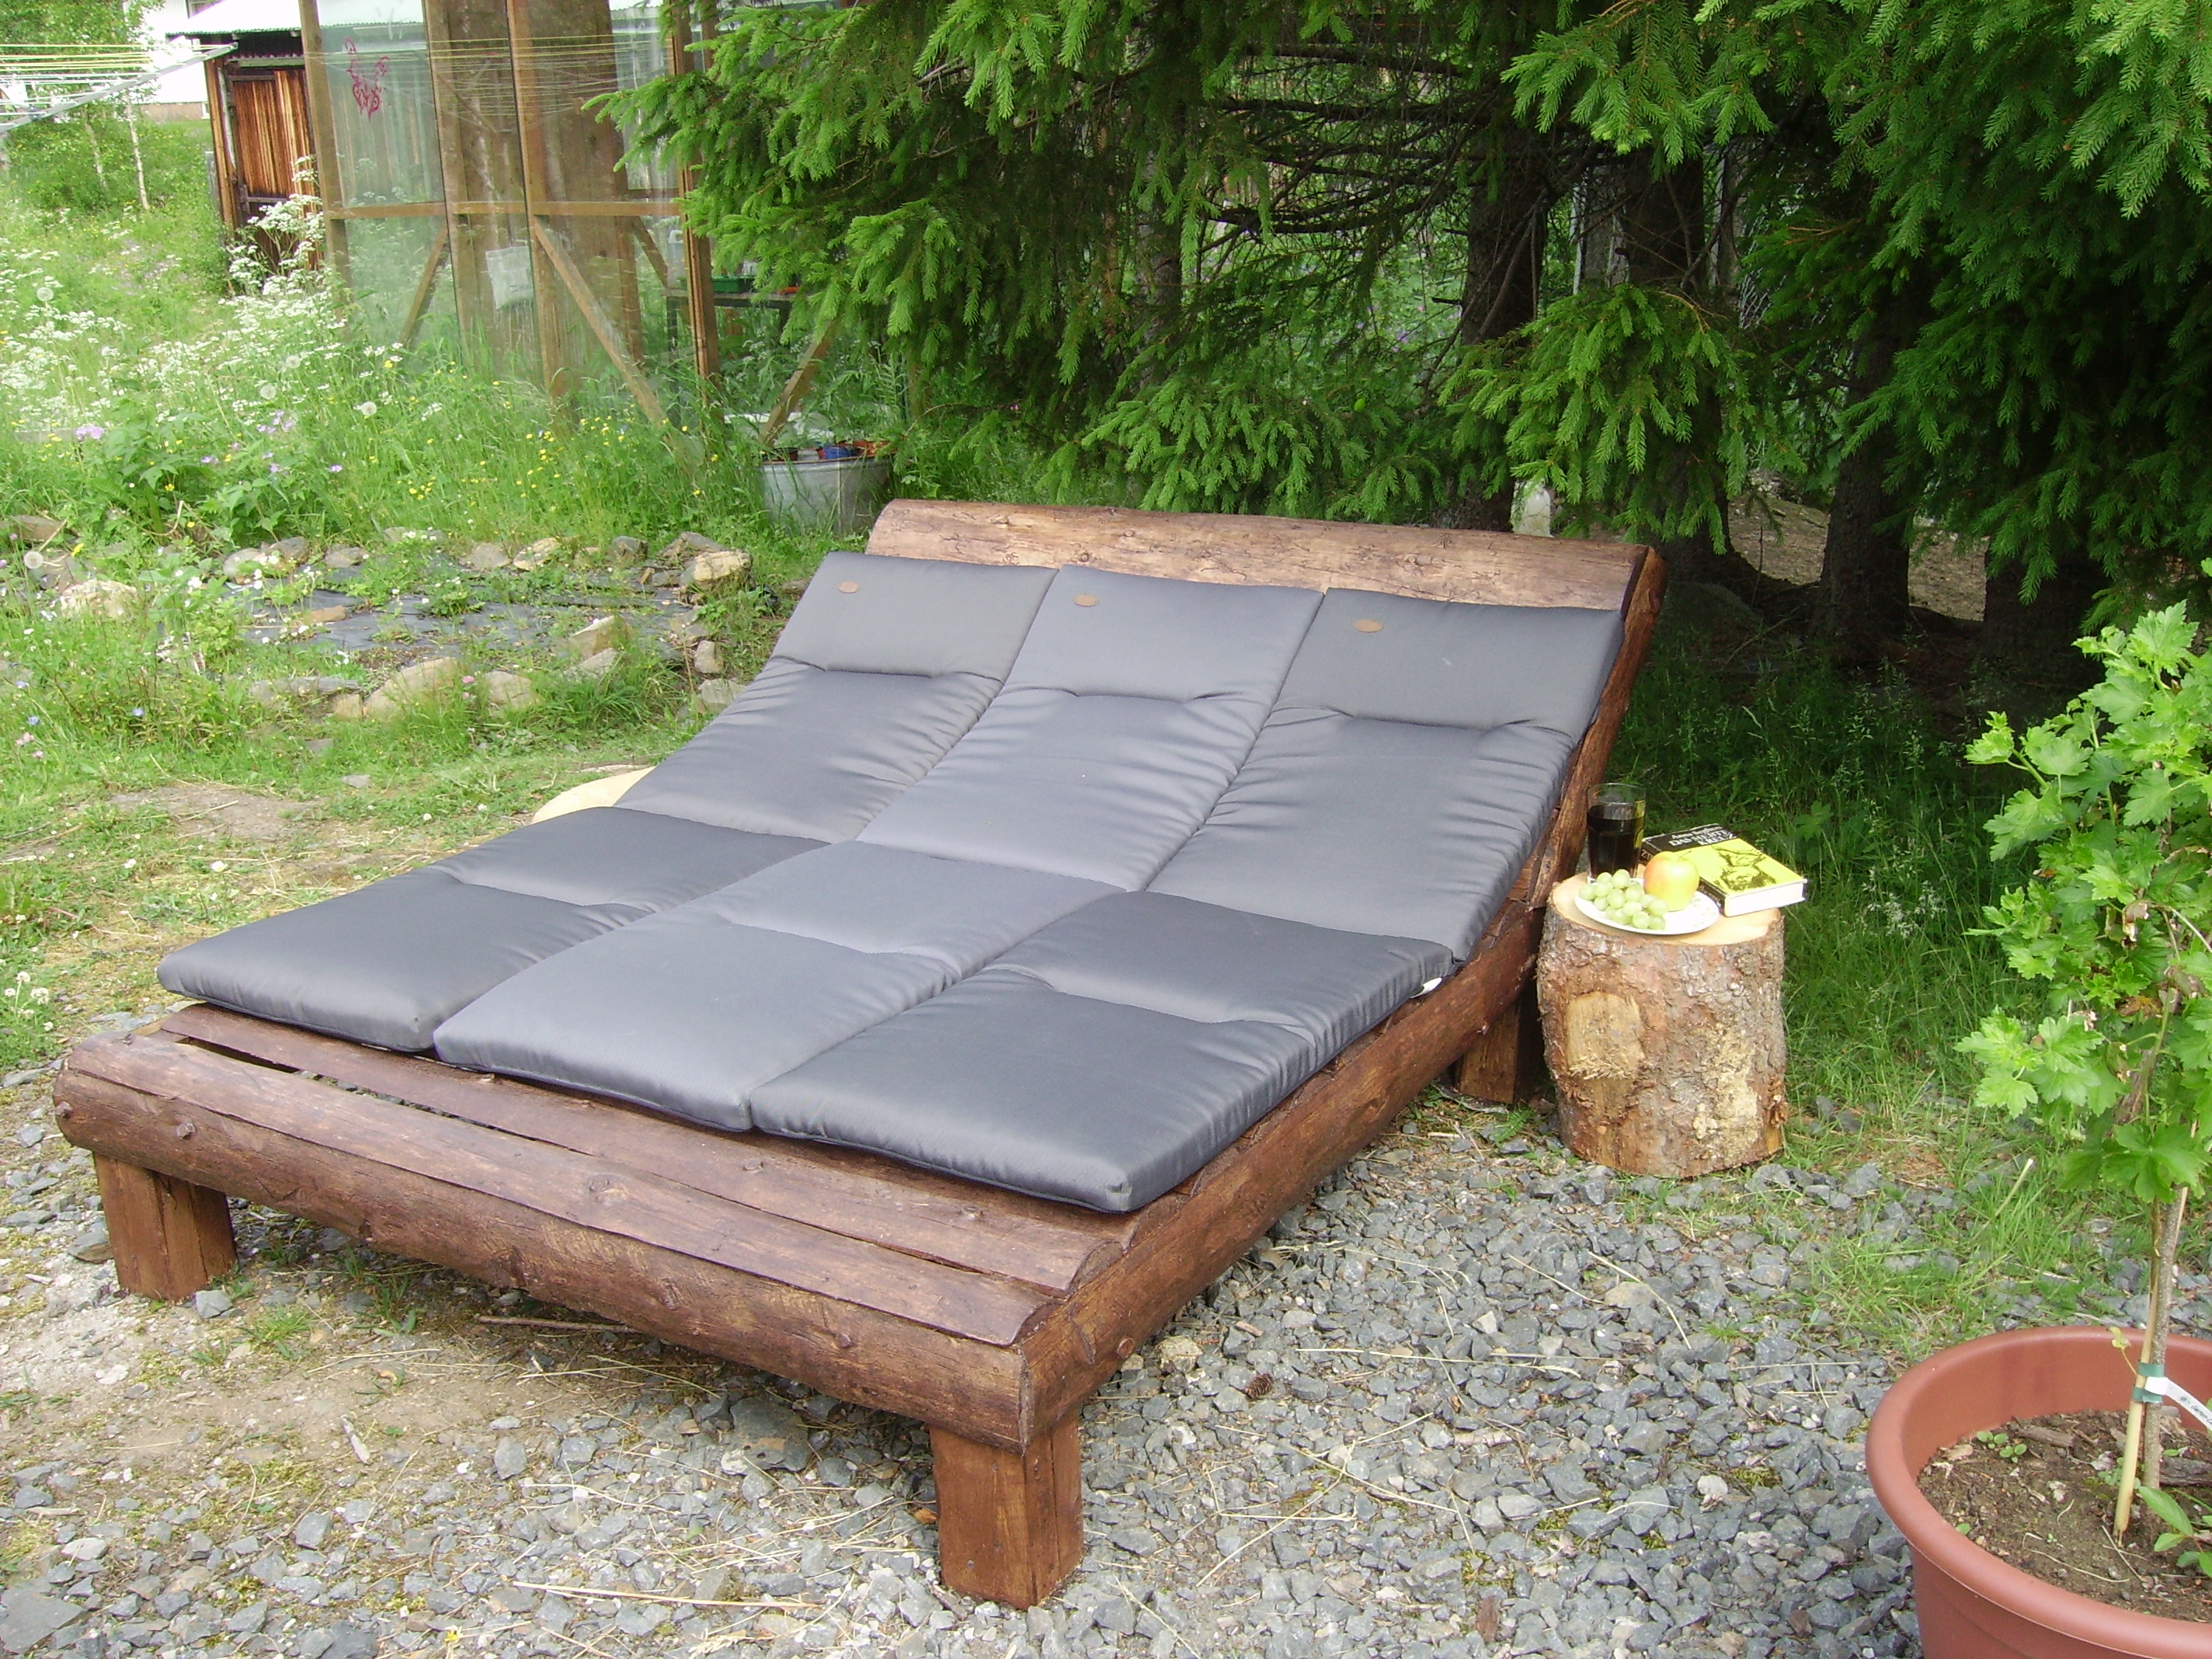 Picture of Lounge From 2x4s and Scrapwood